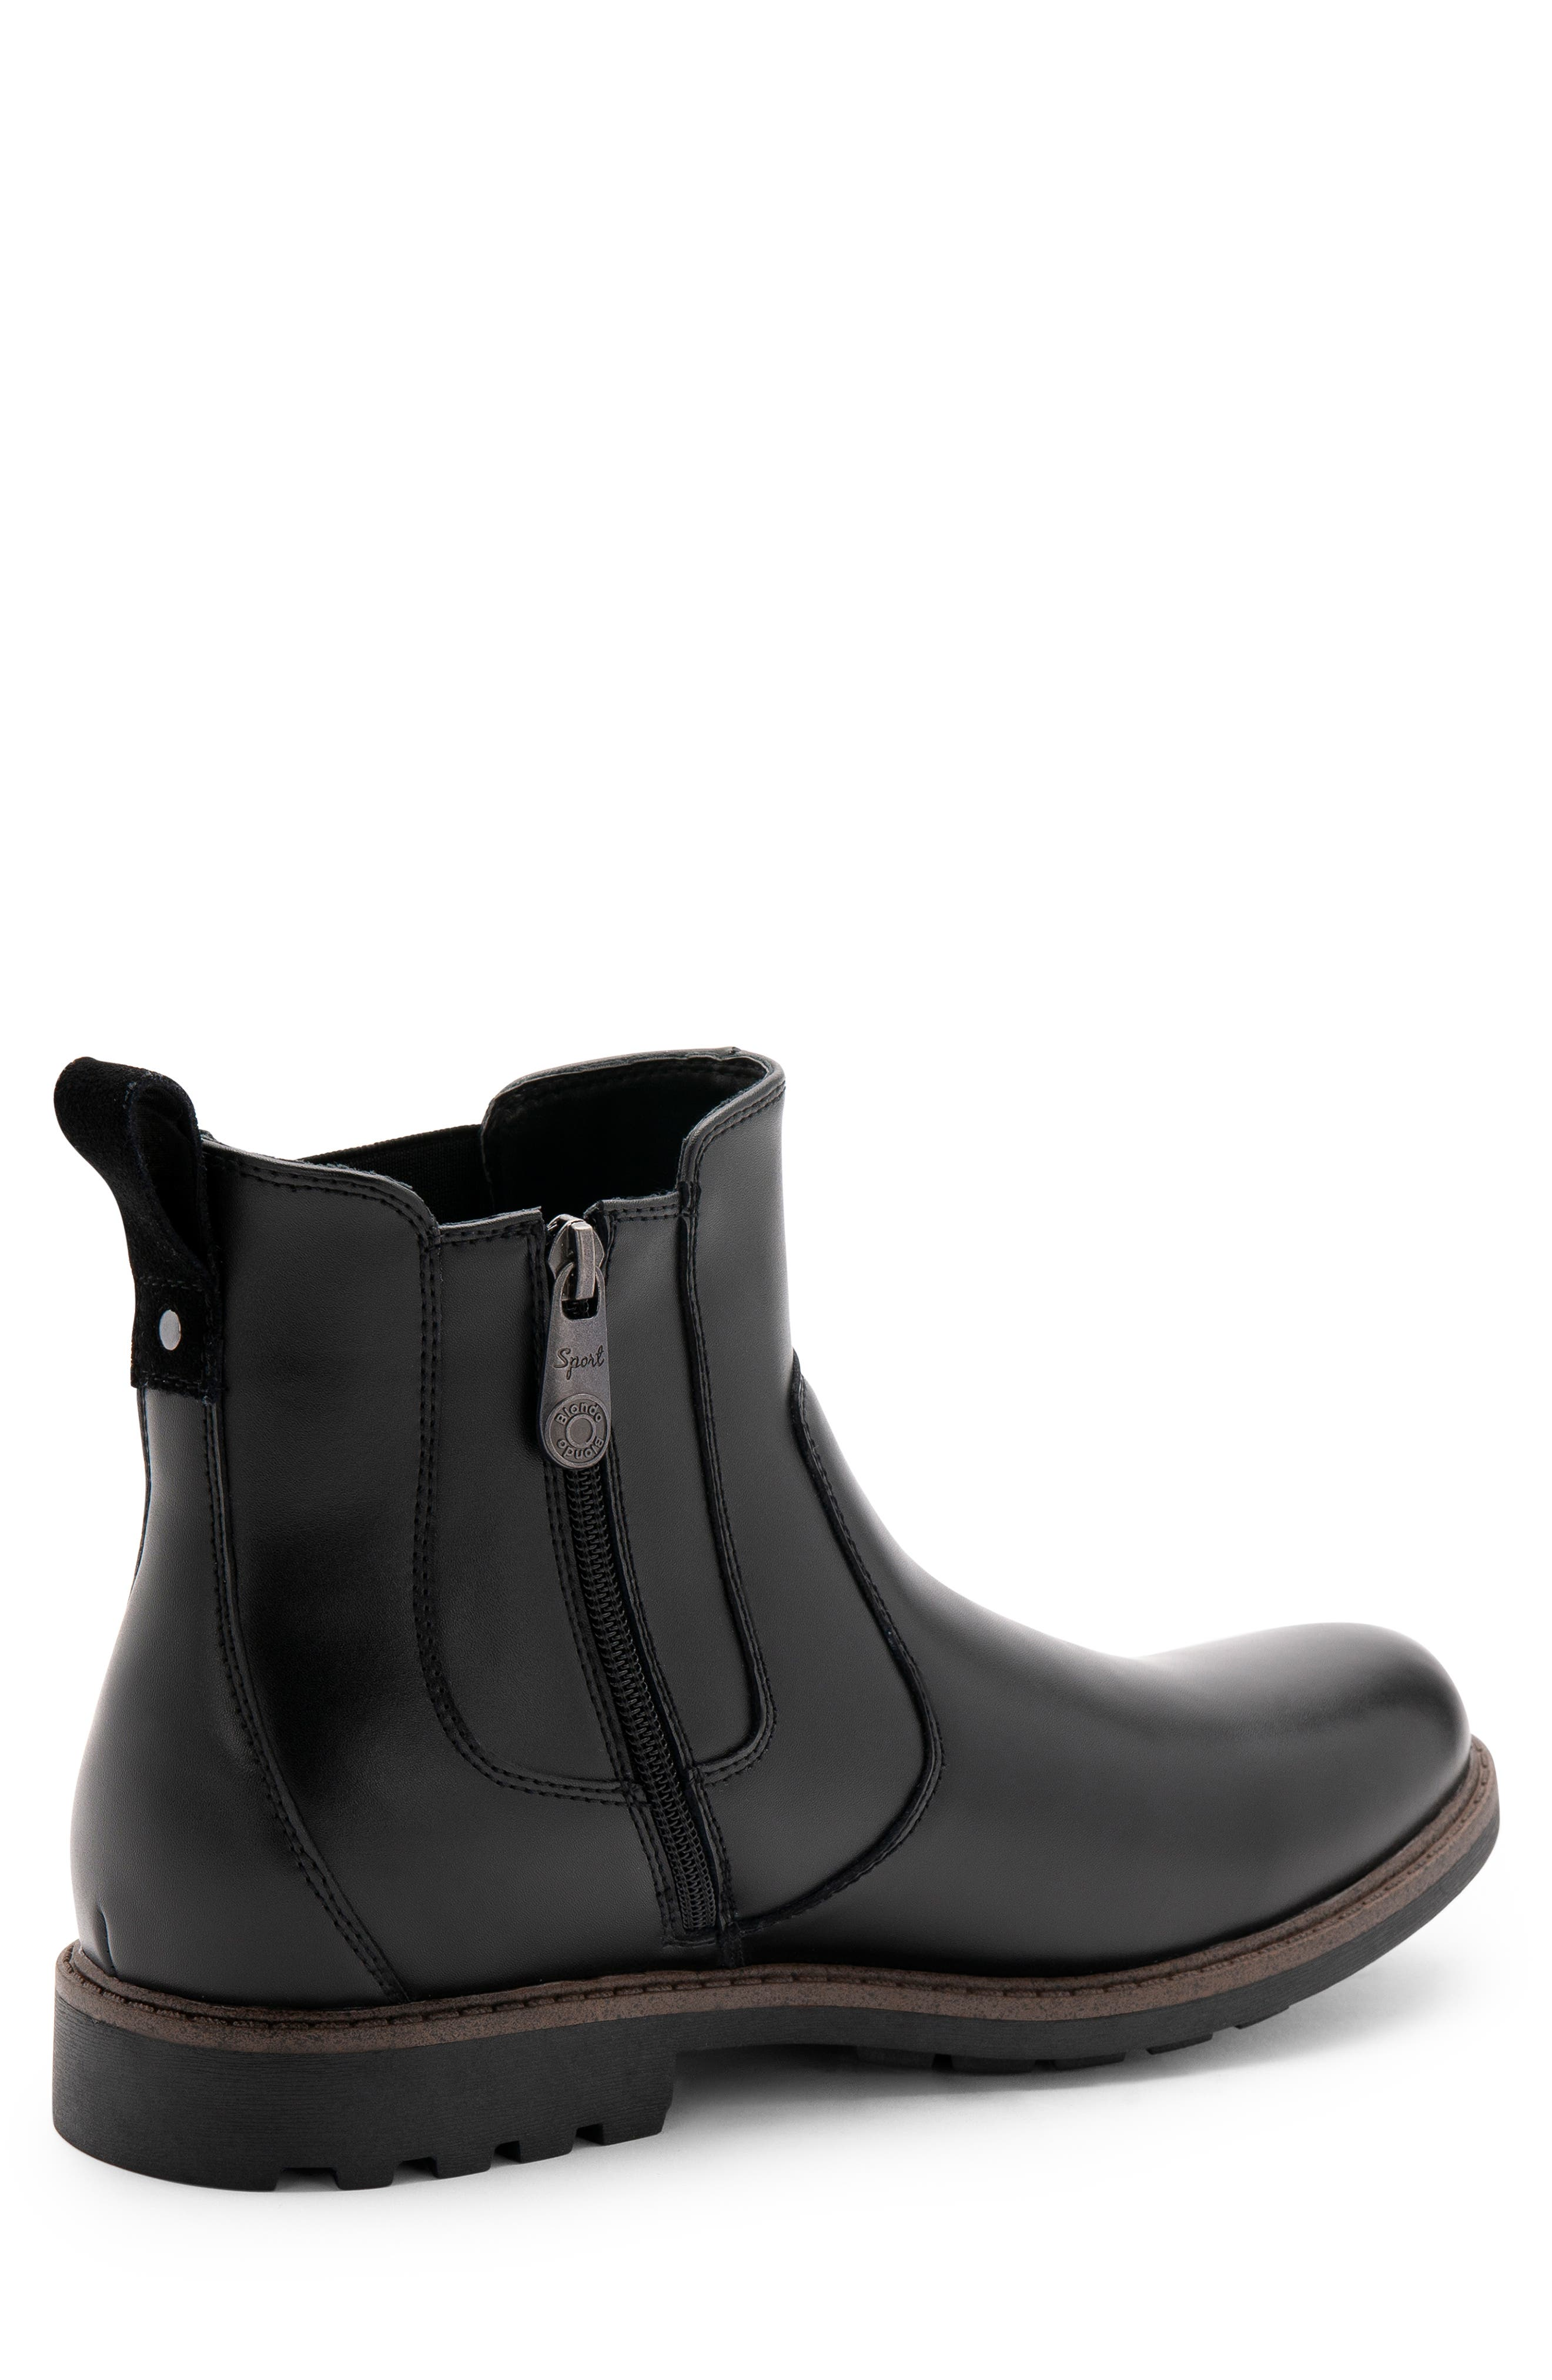 Shadow Waterproof Chelsea Boot,                             Alternate thumbnail 8, color,                             BLACK LEATHER